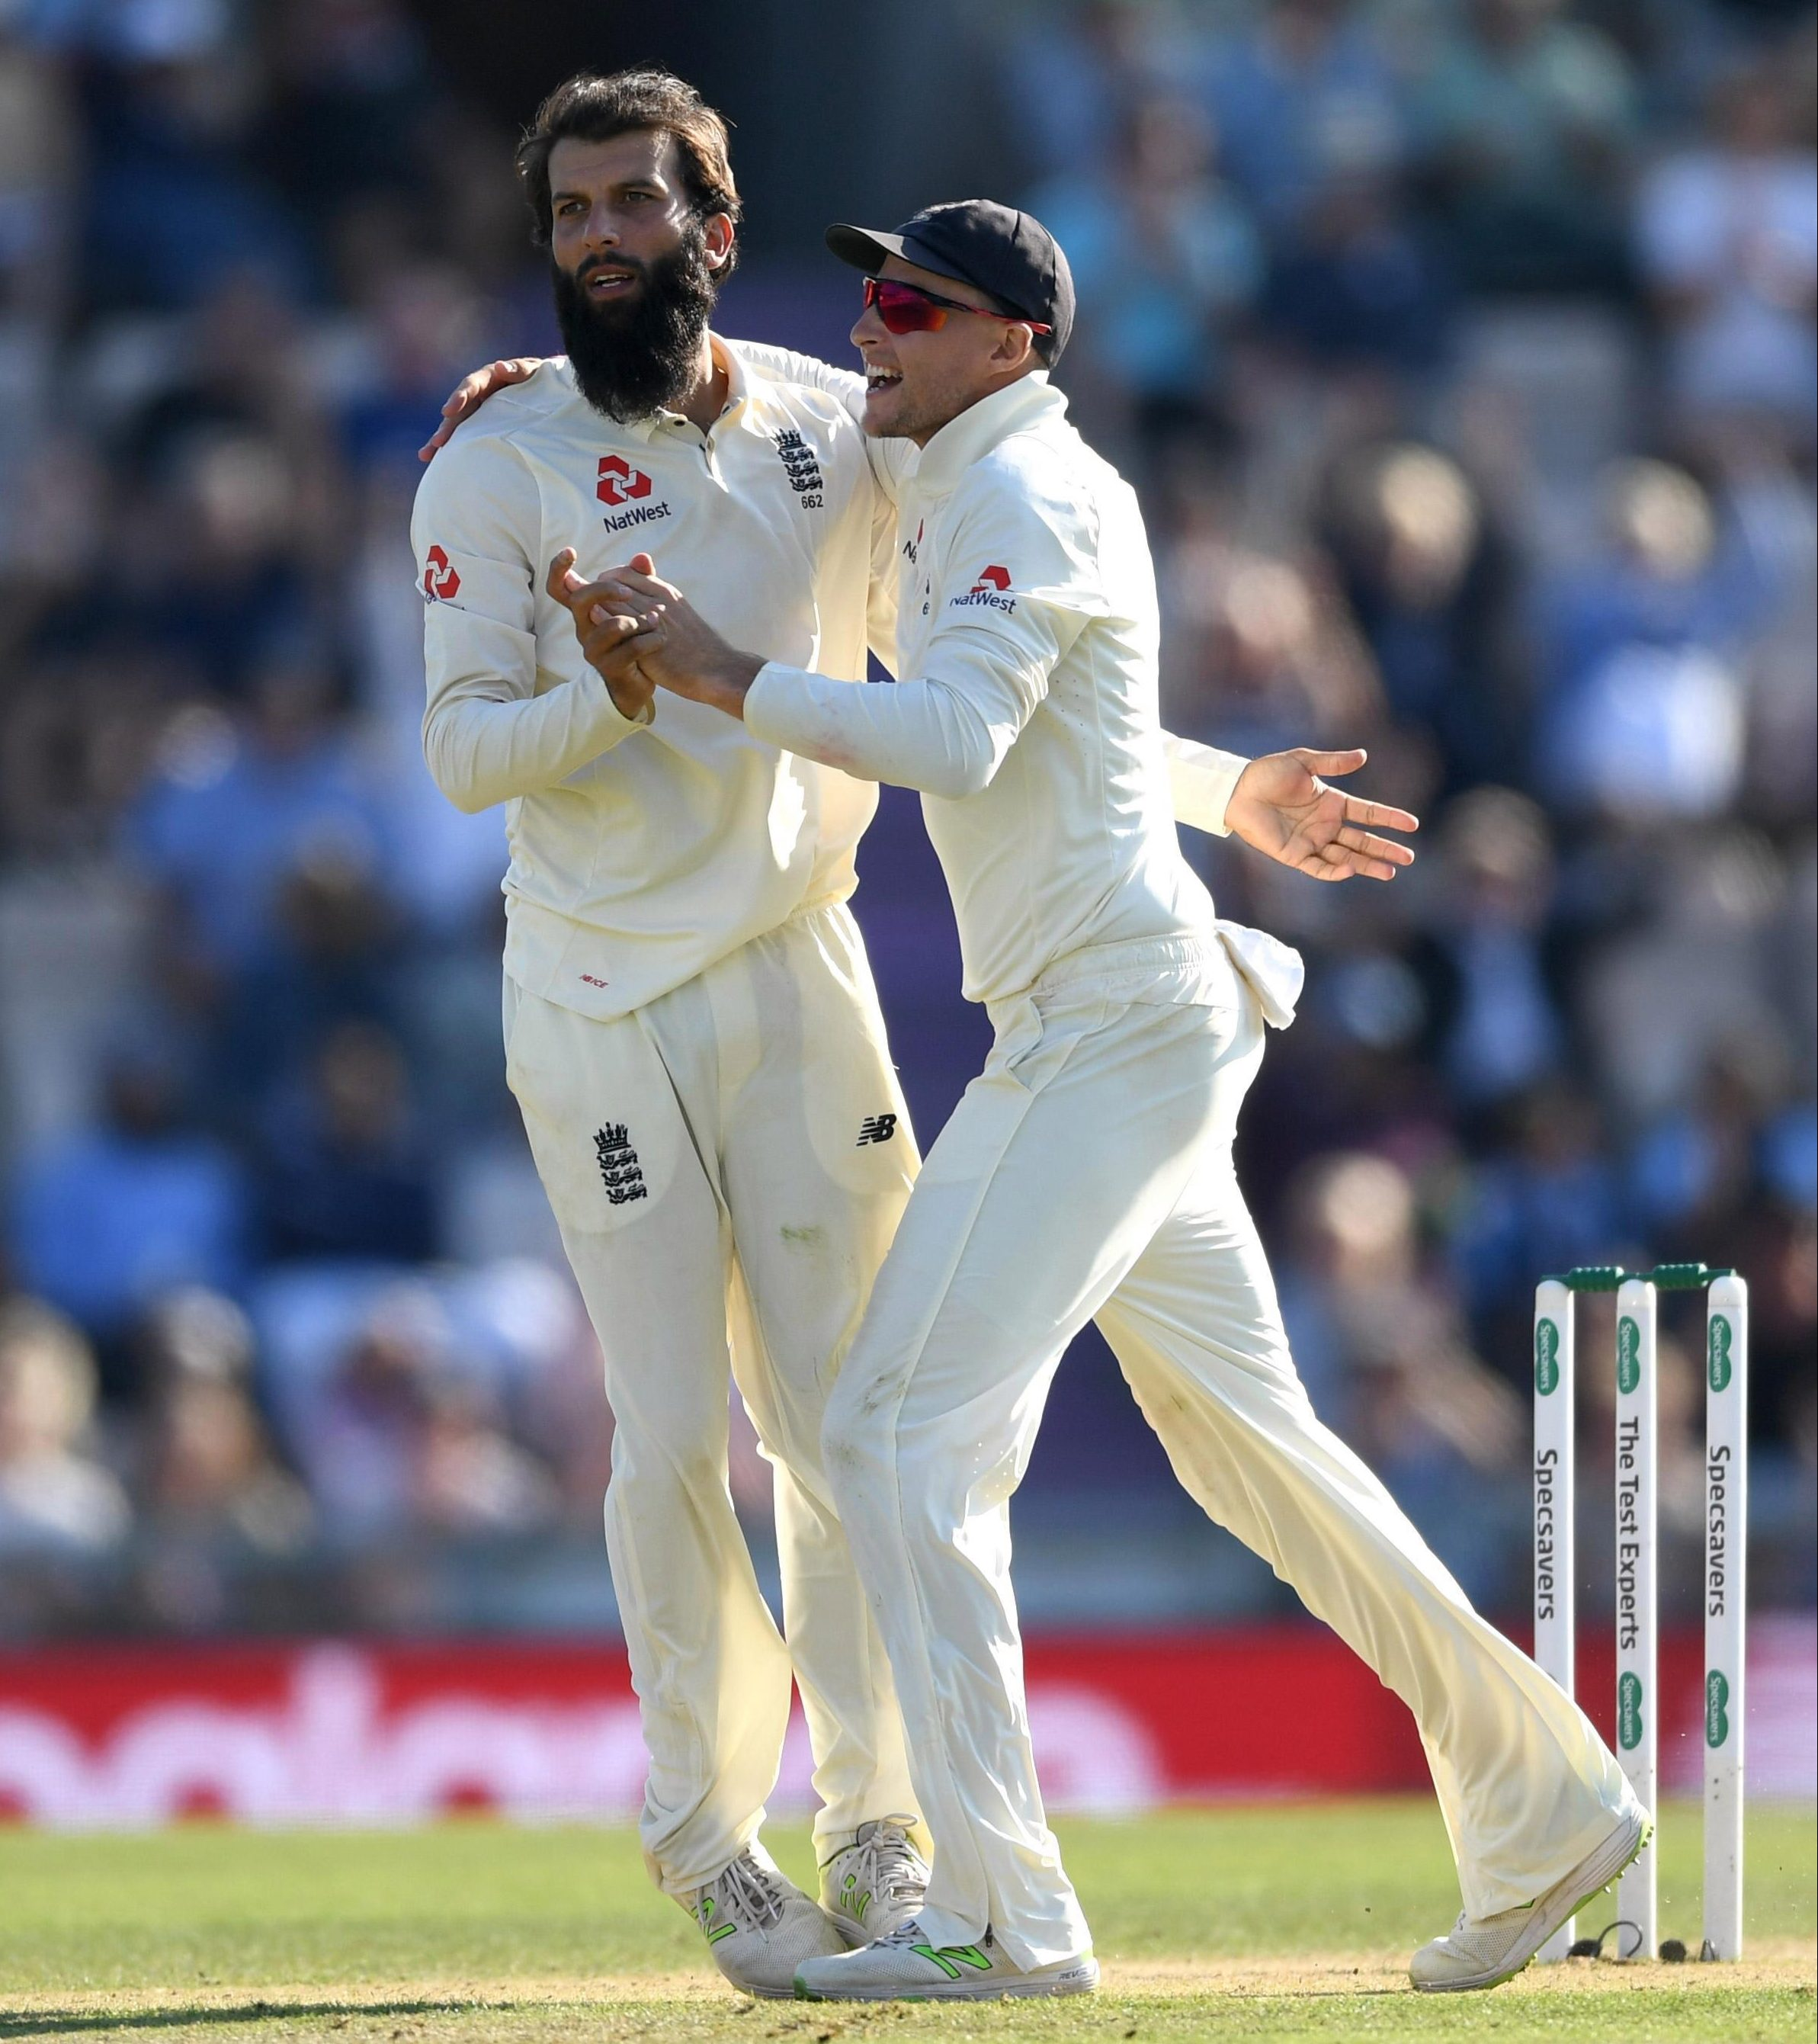 Moeen Ali routed India's batting with nine wickets in the Fourth Test